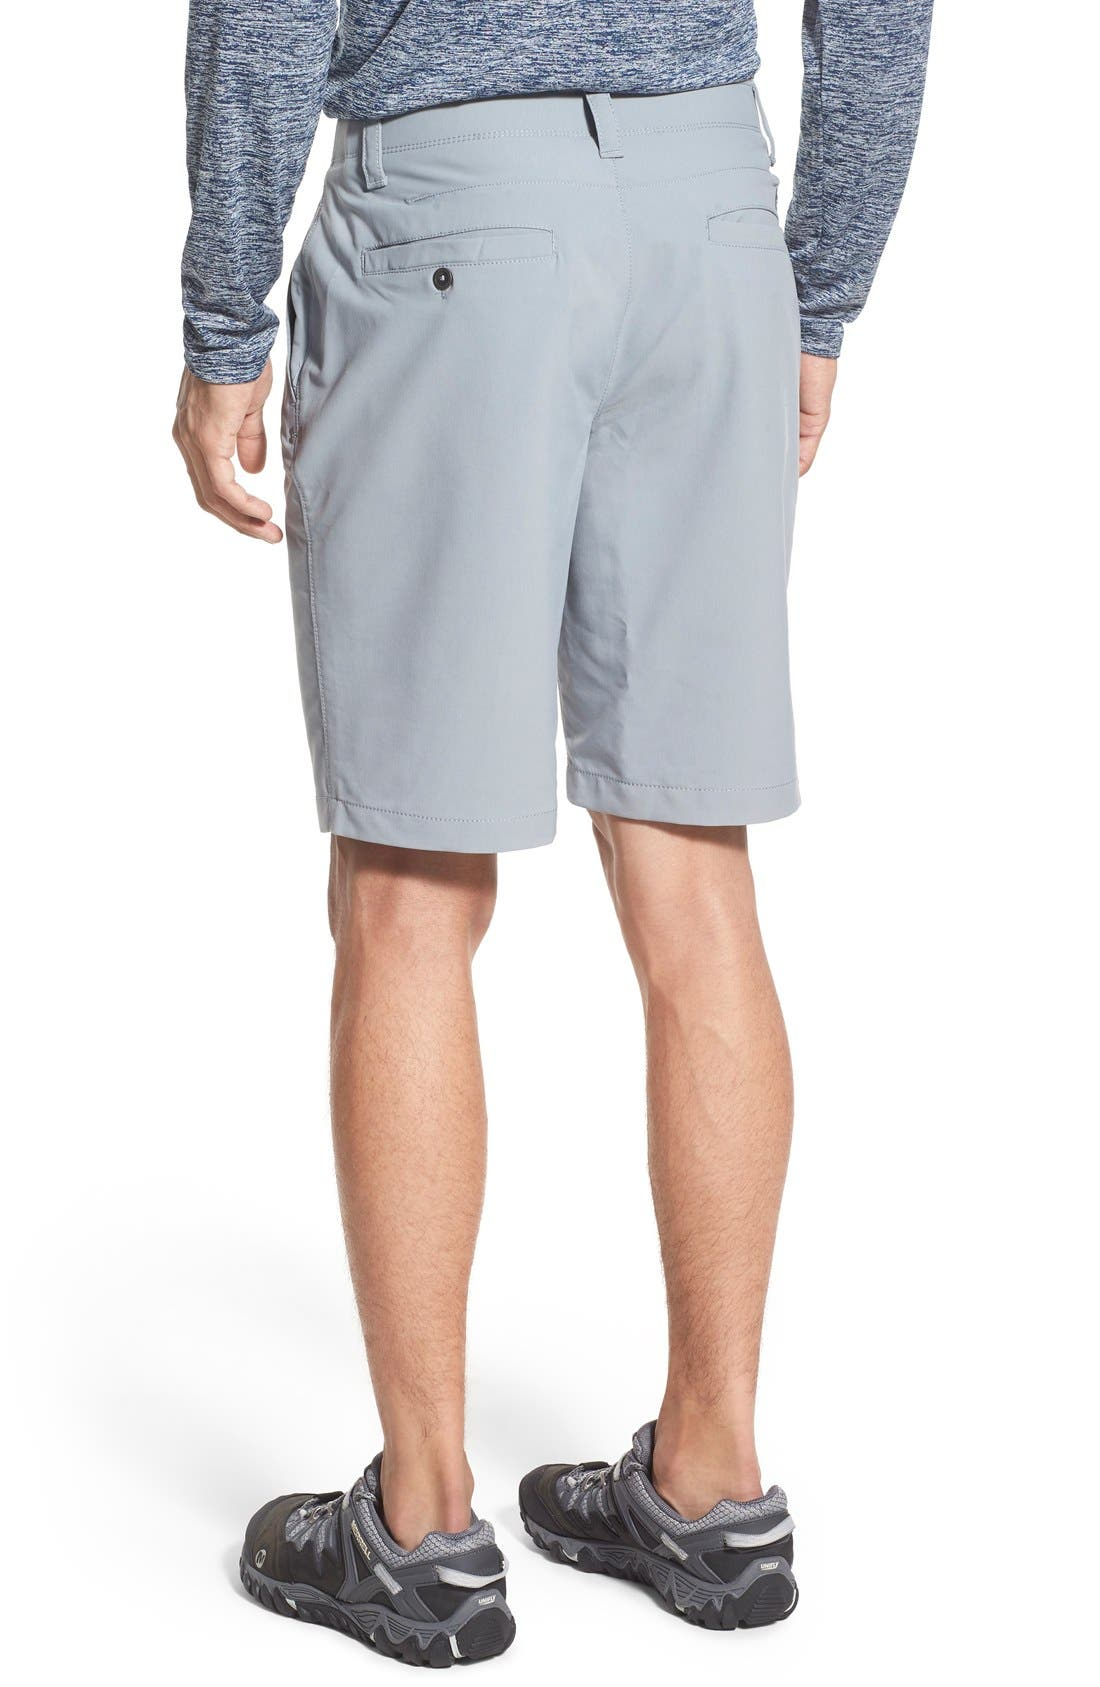 'Matchplay' Moisture Wicking Golf Shorts,                             Alternate thumbnail 3, color,                             035